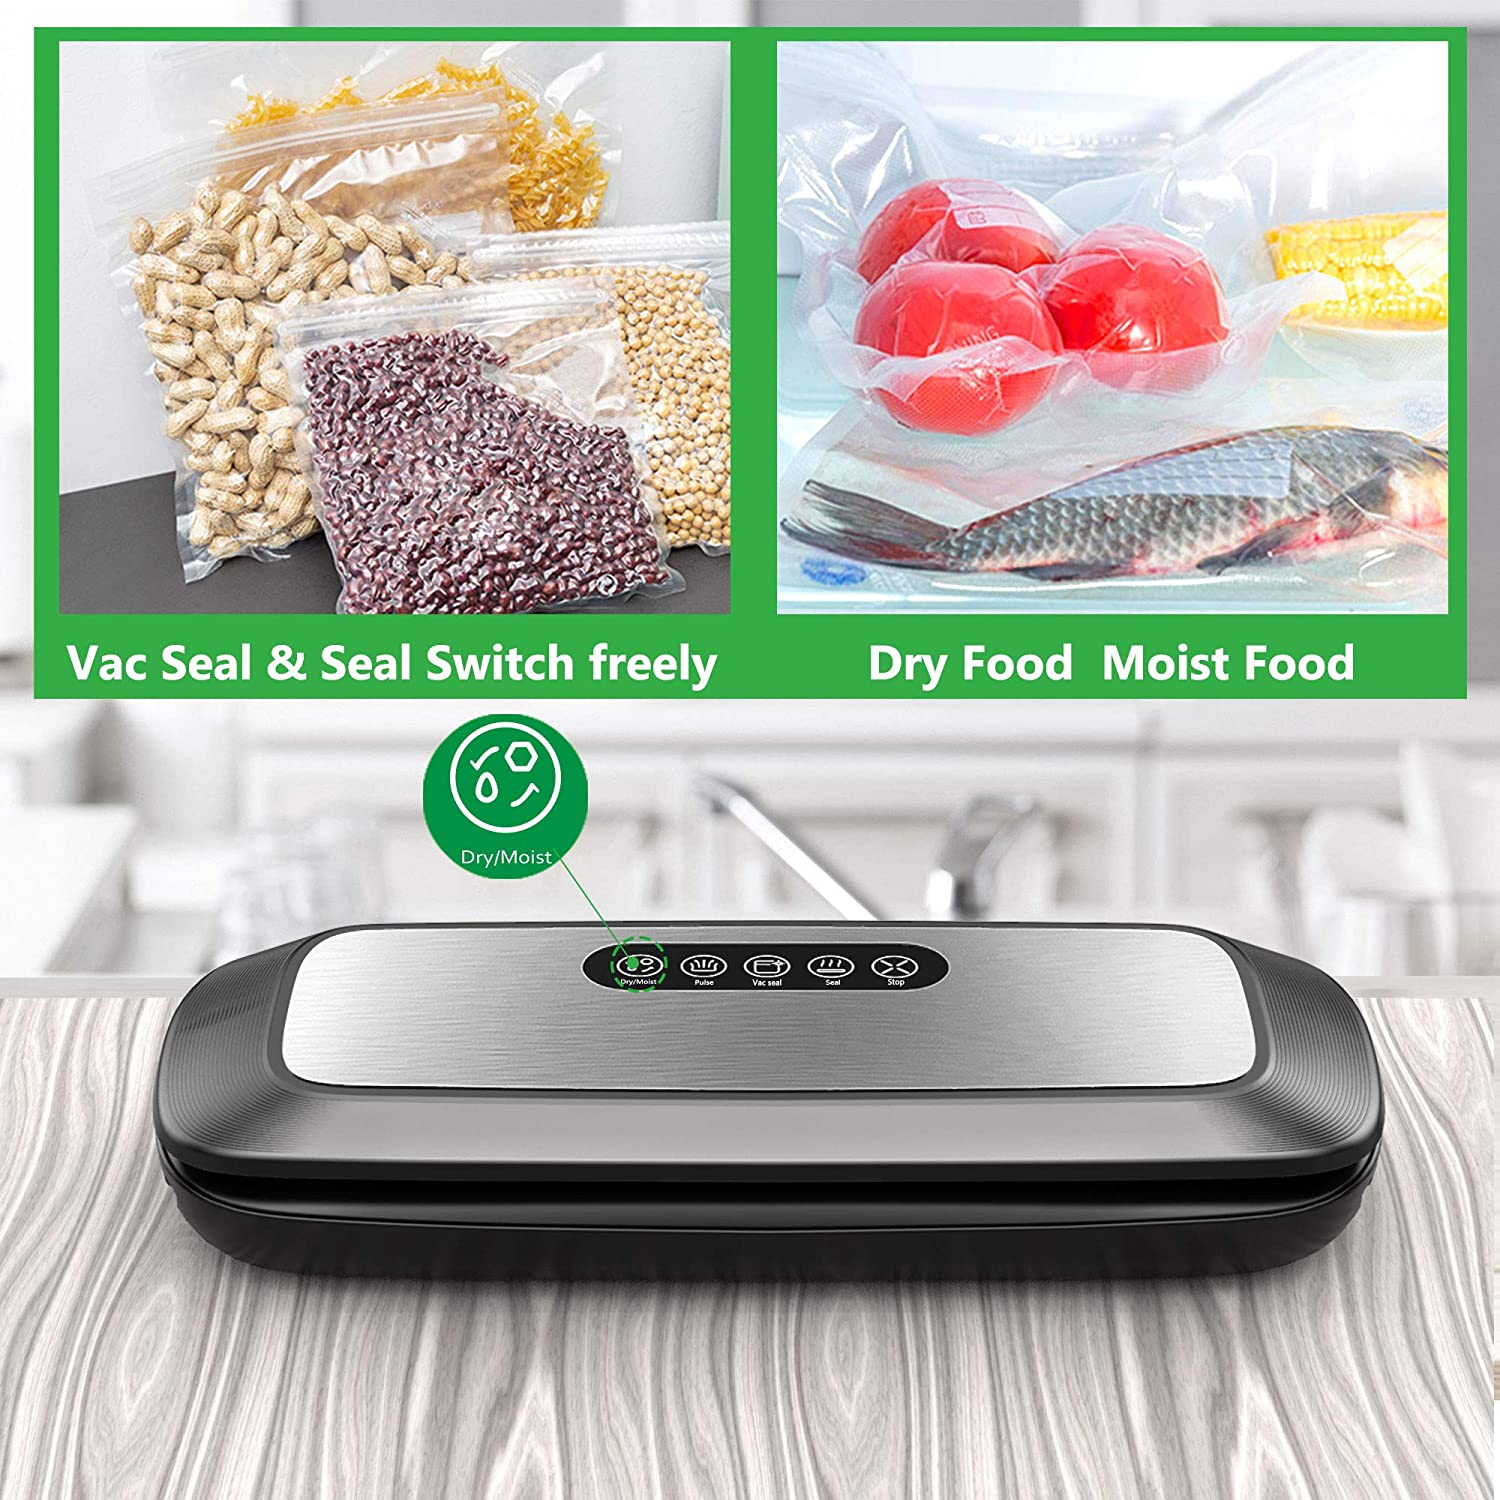 Vacuum Sealer Machine, Automatic Food Vacuum Sealer with Smart Stainless Steel Panel Touch Control, Sous Vide Vacuum Sealer Machine with Dry Moist Sealing and Starter Kit